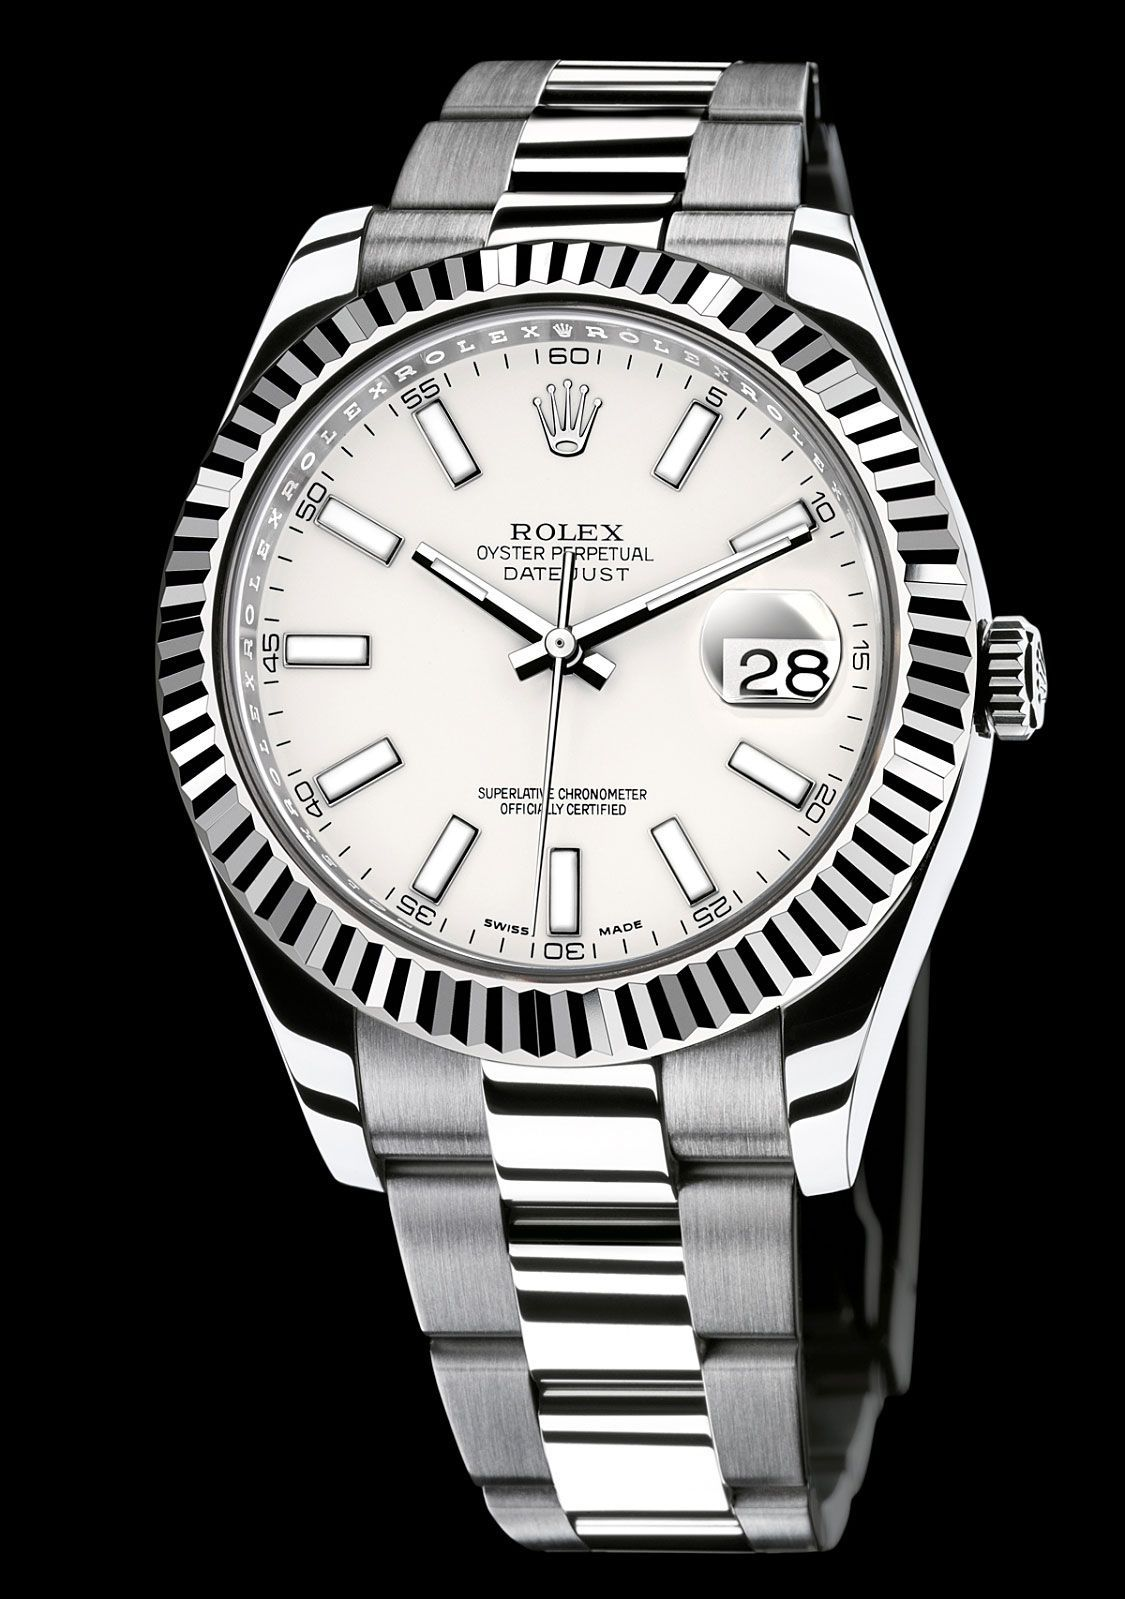 Rolex Date Just II, 41mm, white dial, white gold bezel Quality watches from around the wold at fantastic prices